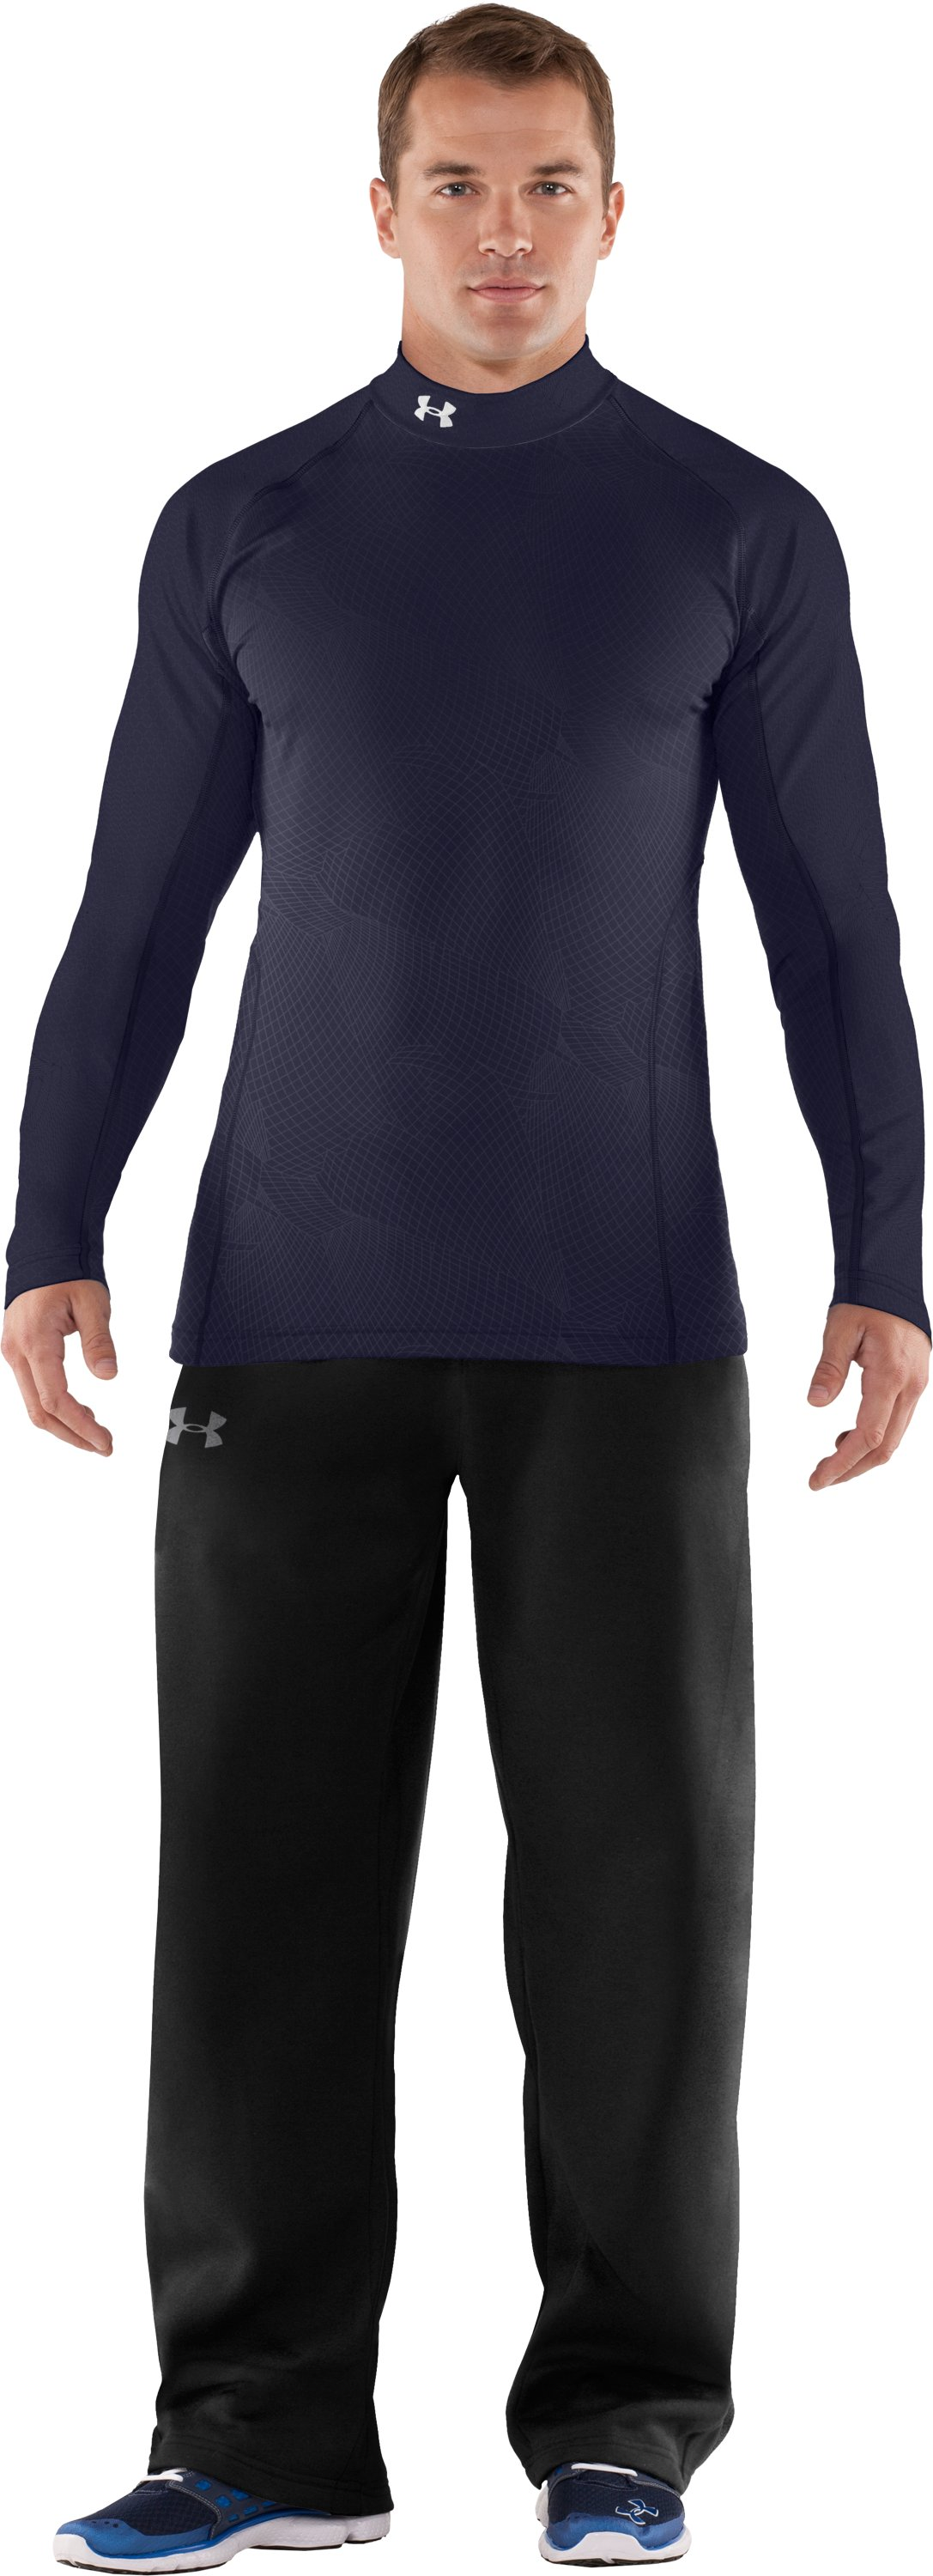 Men's UA Competition Fitted Baselayer Mock, Midnight Navy, zoomed image